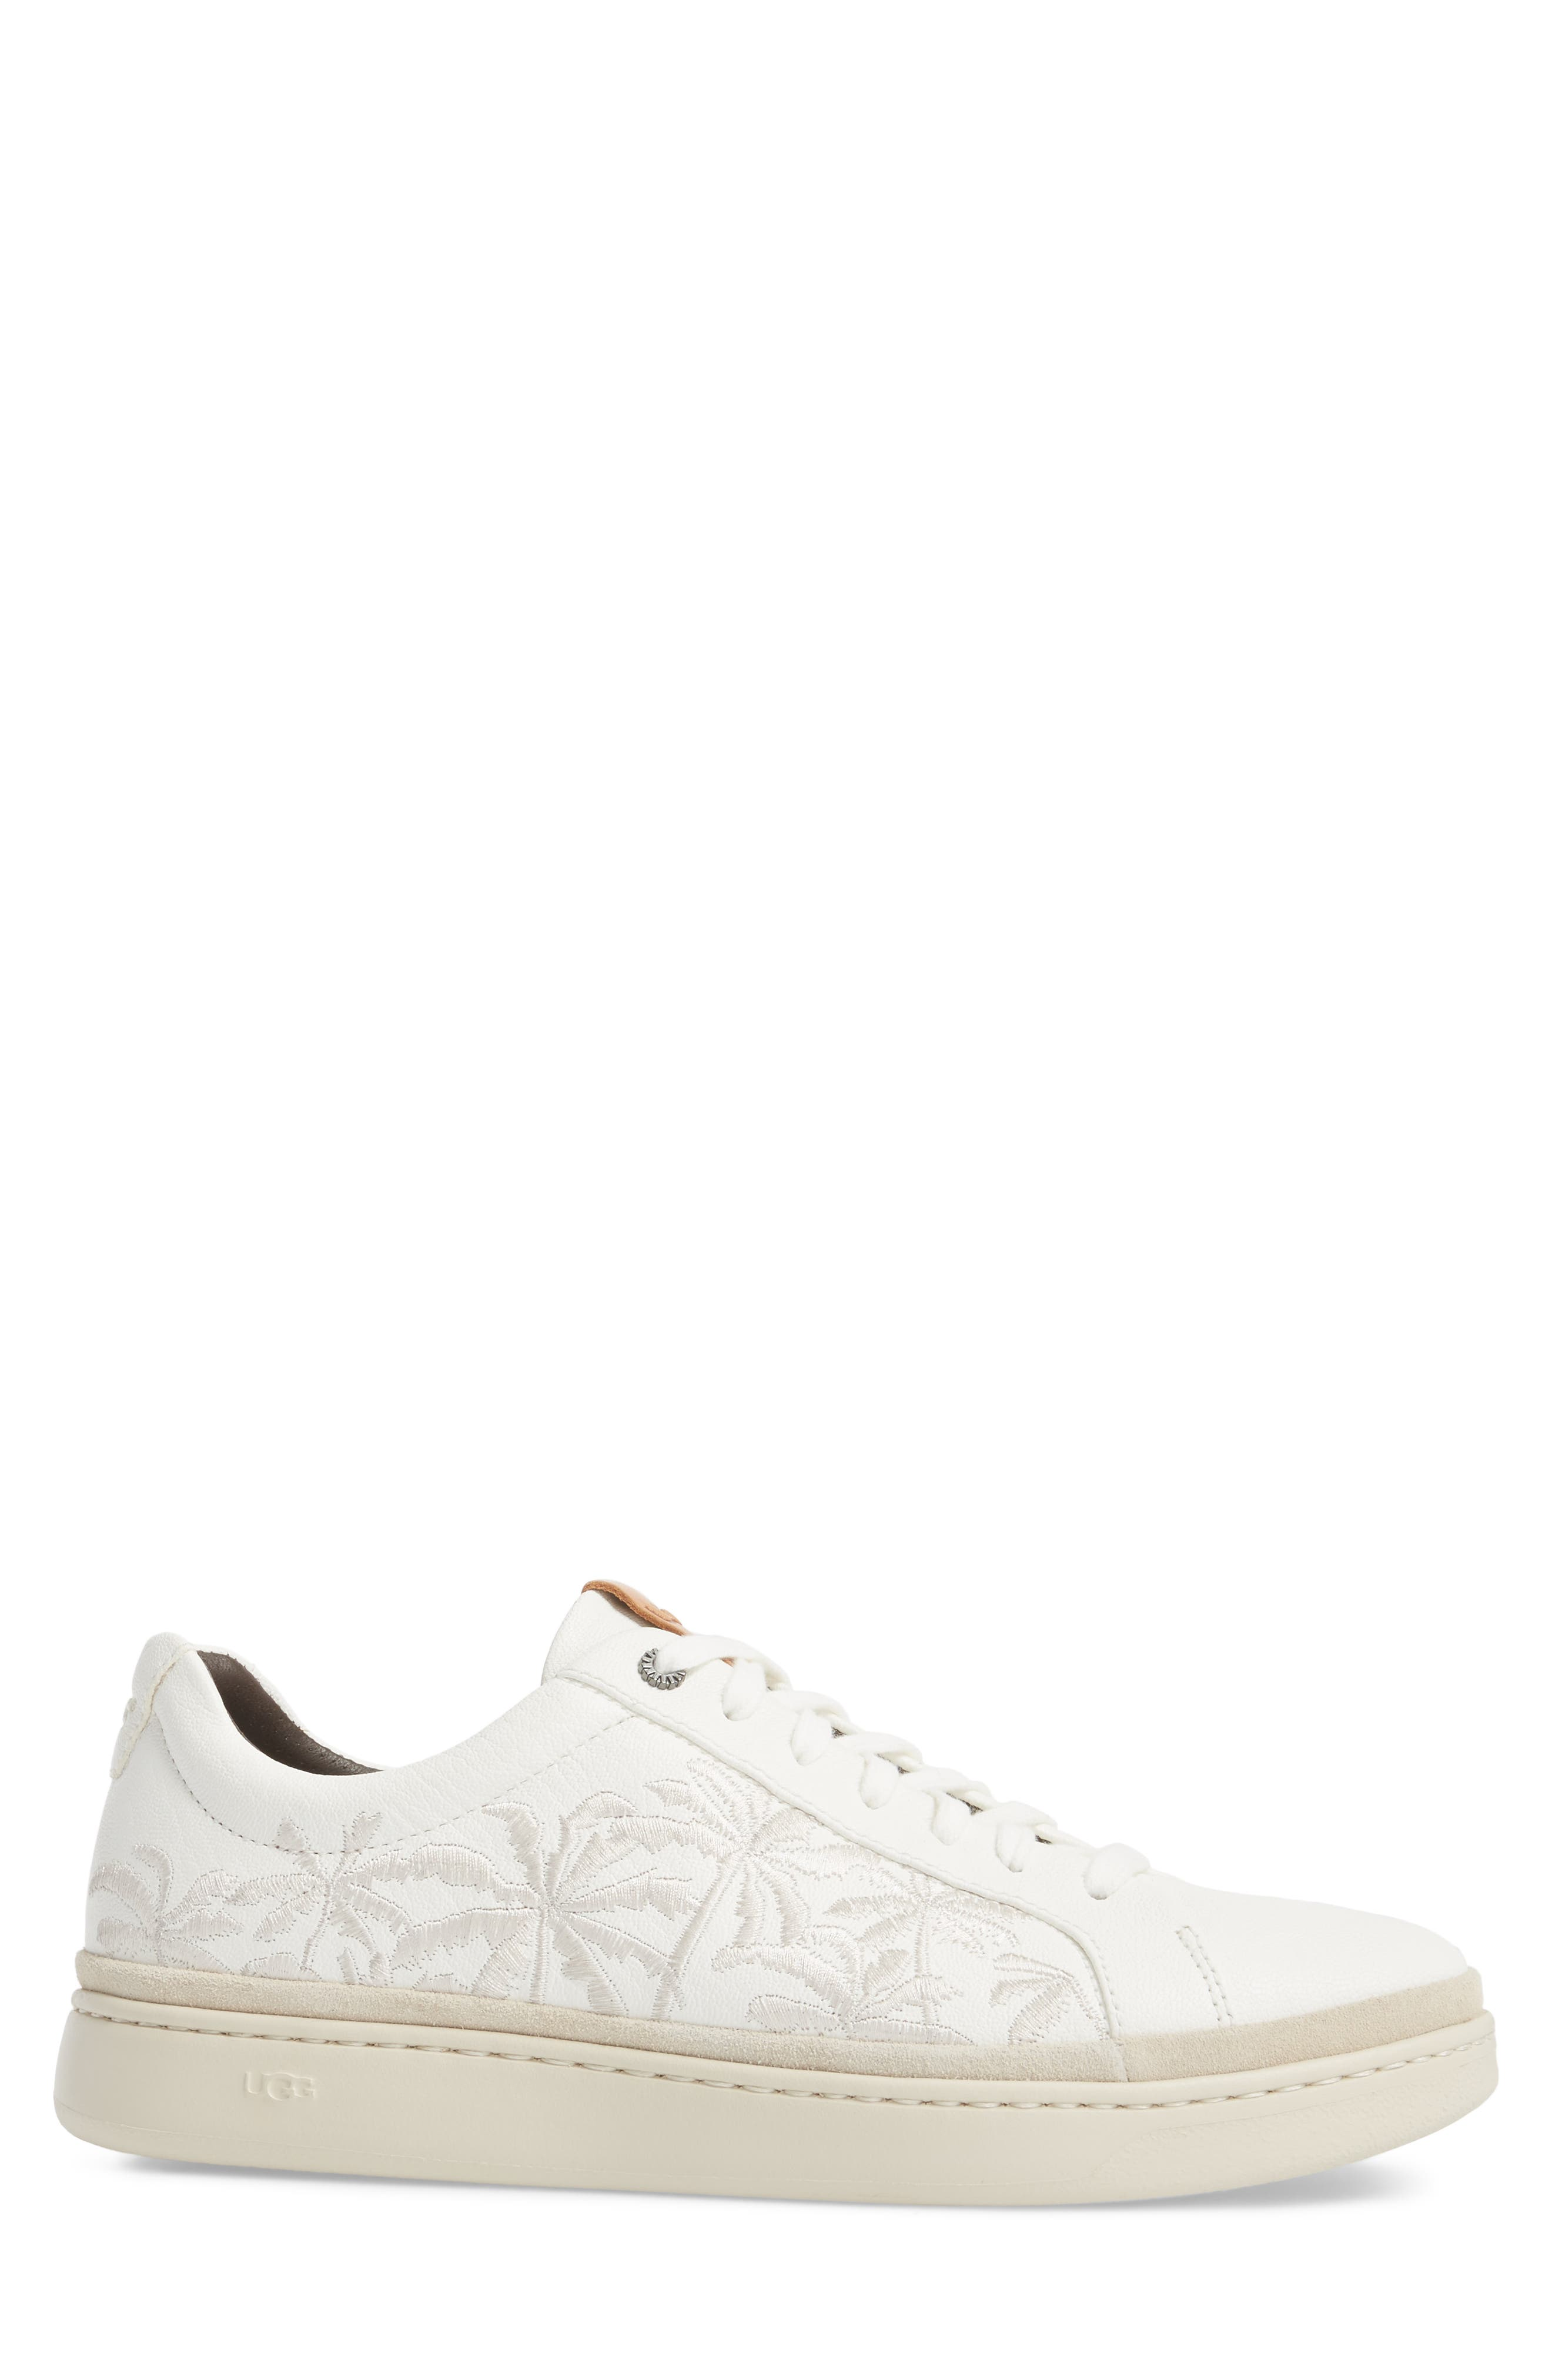 Palm Embroidered Sneaker,                             Alternate thumbnail 3, color,                             100